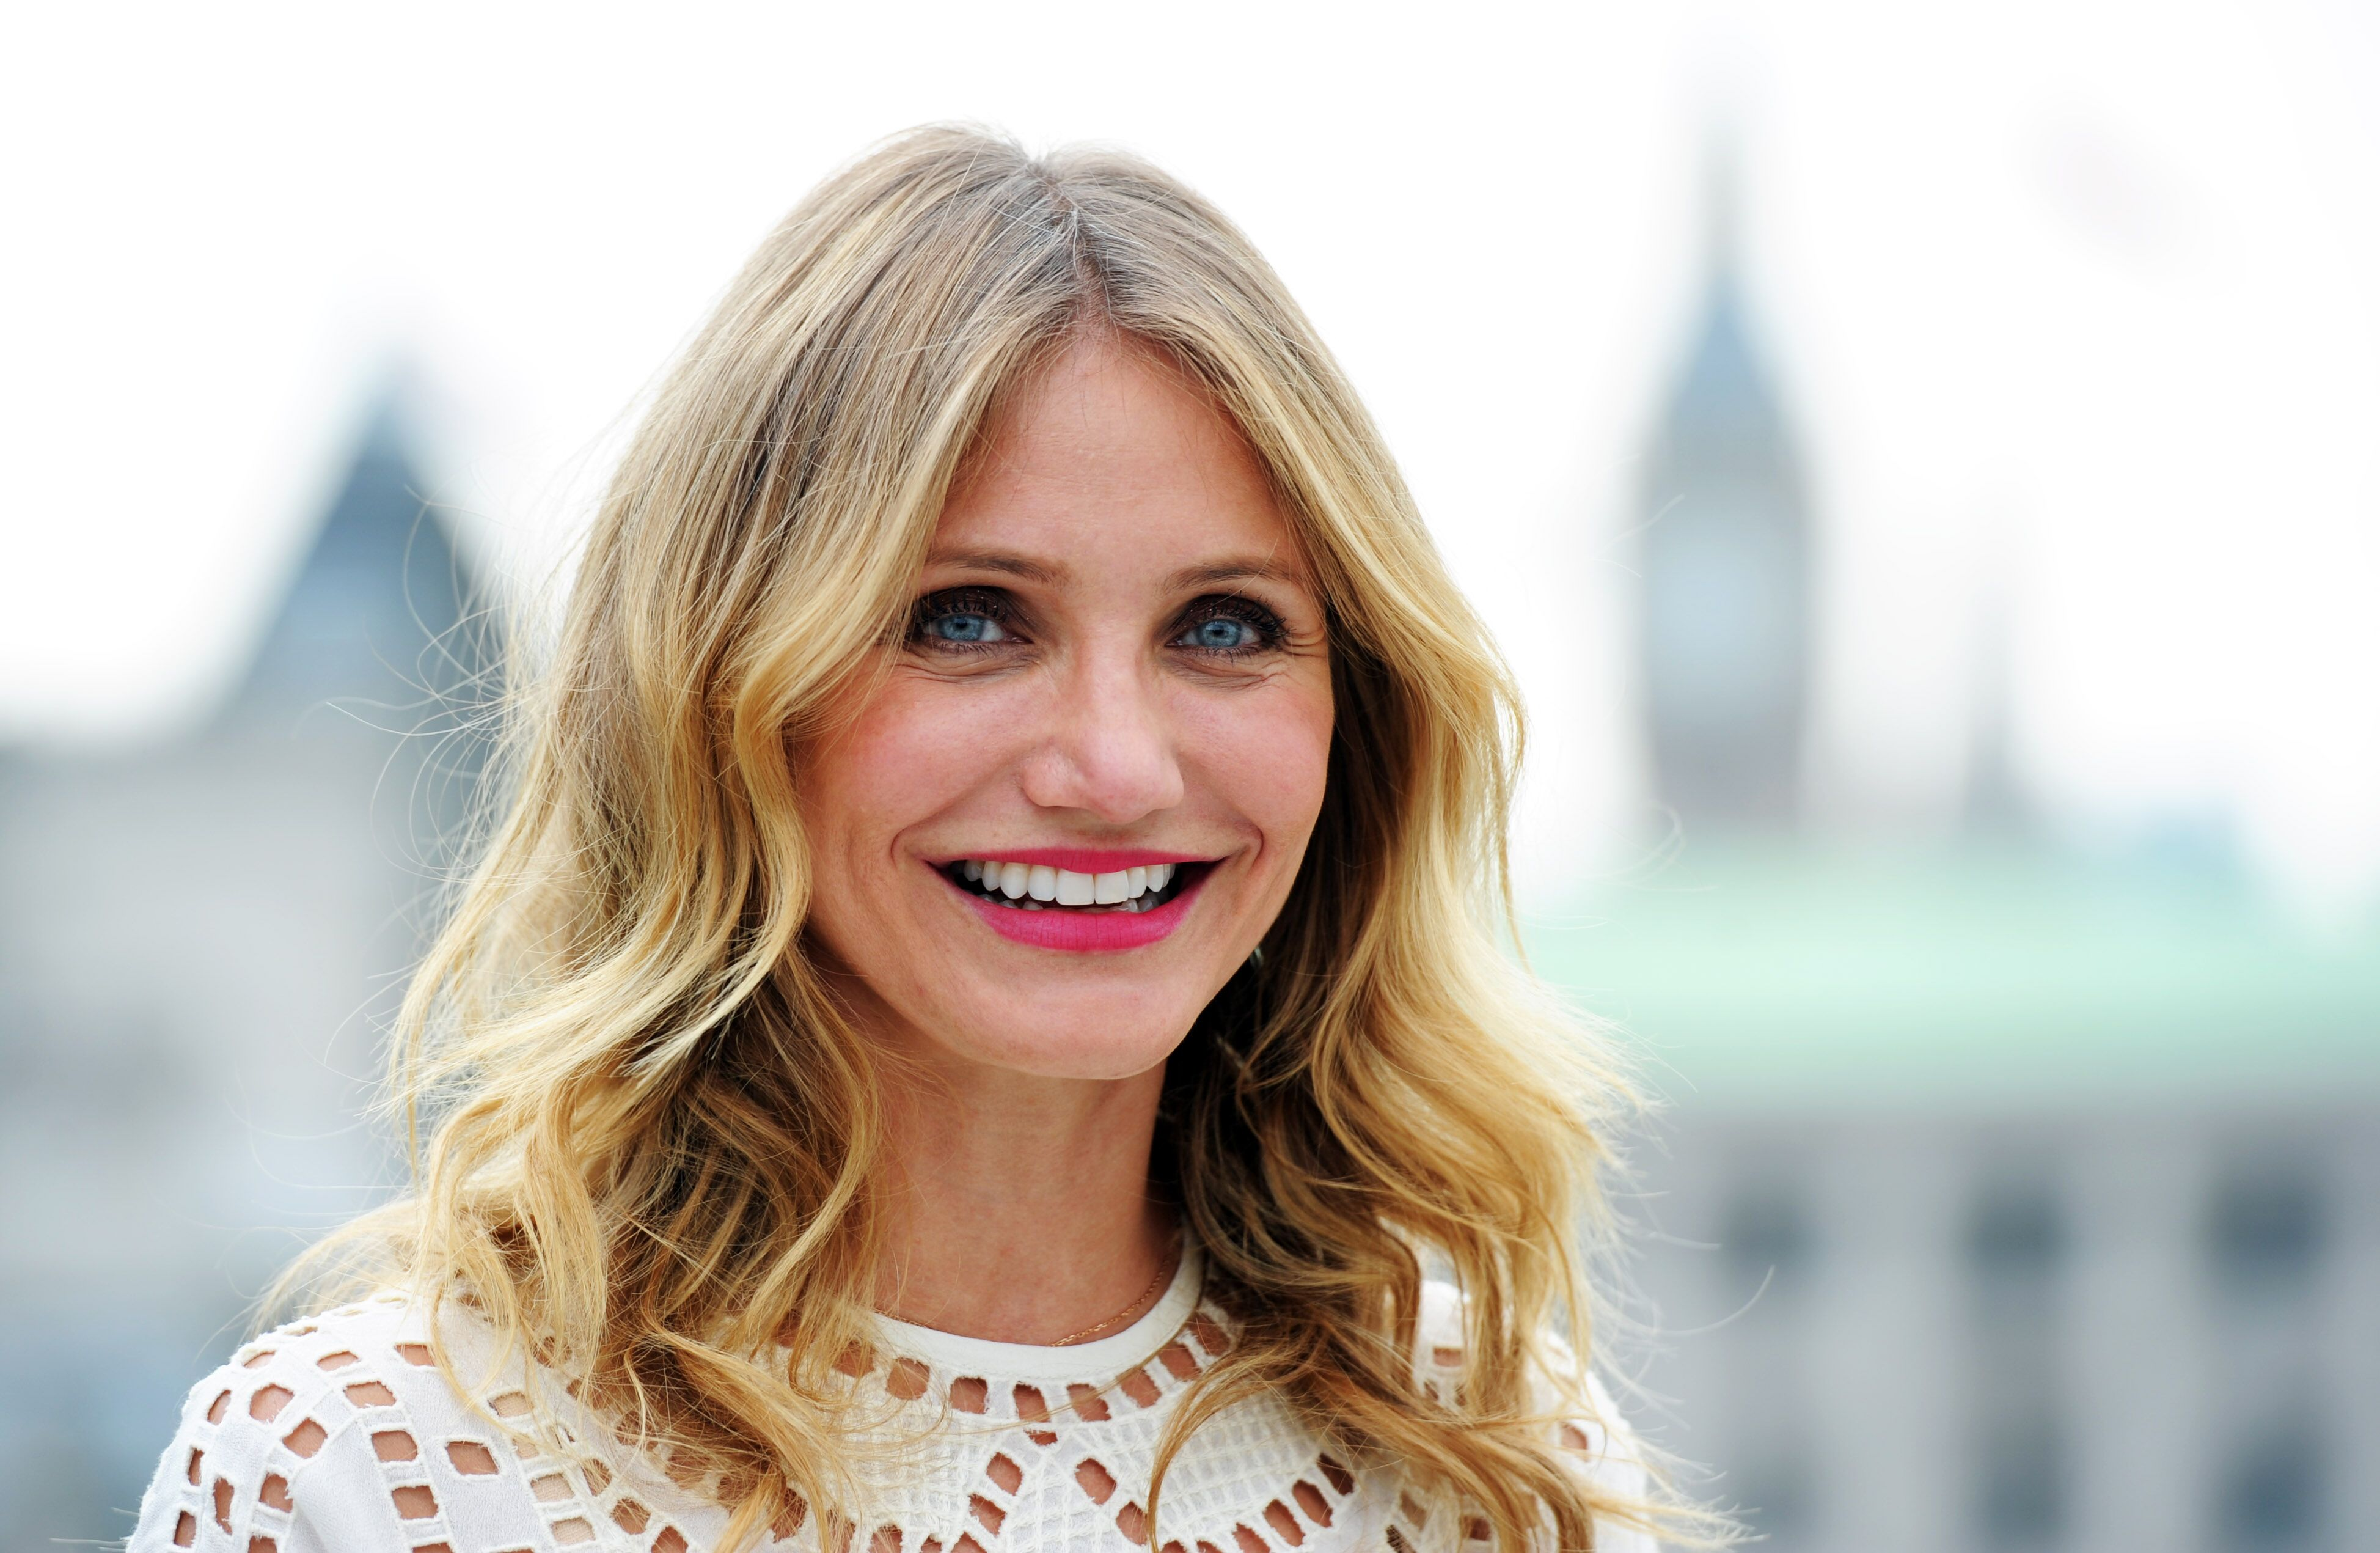 """Cameron Diaz attends a photocall for """"Sex Tape"""" at Corinthia Hotel London. 